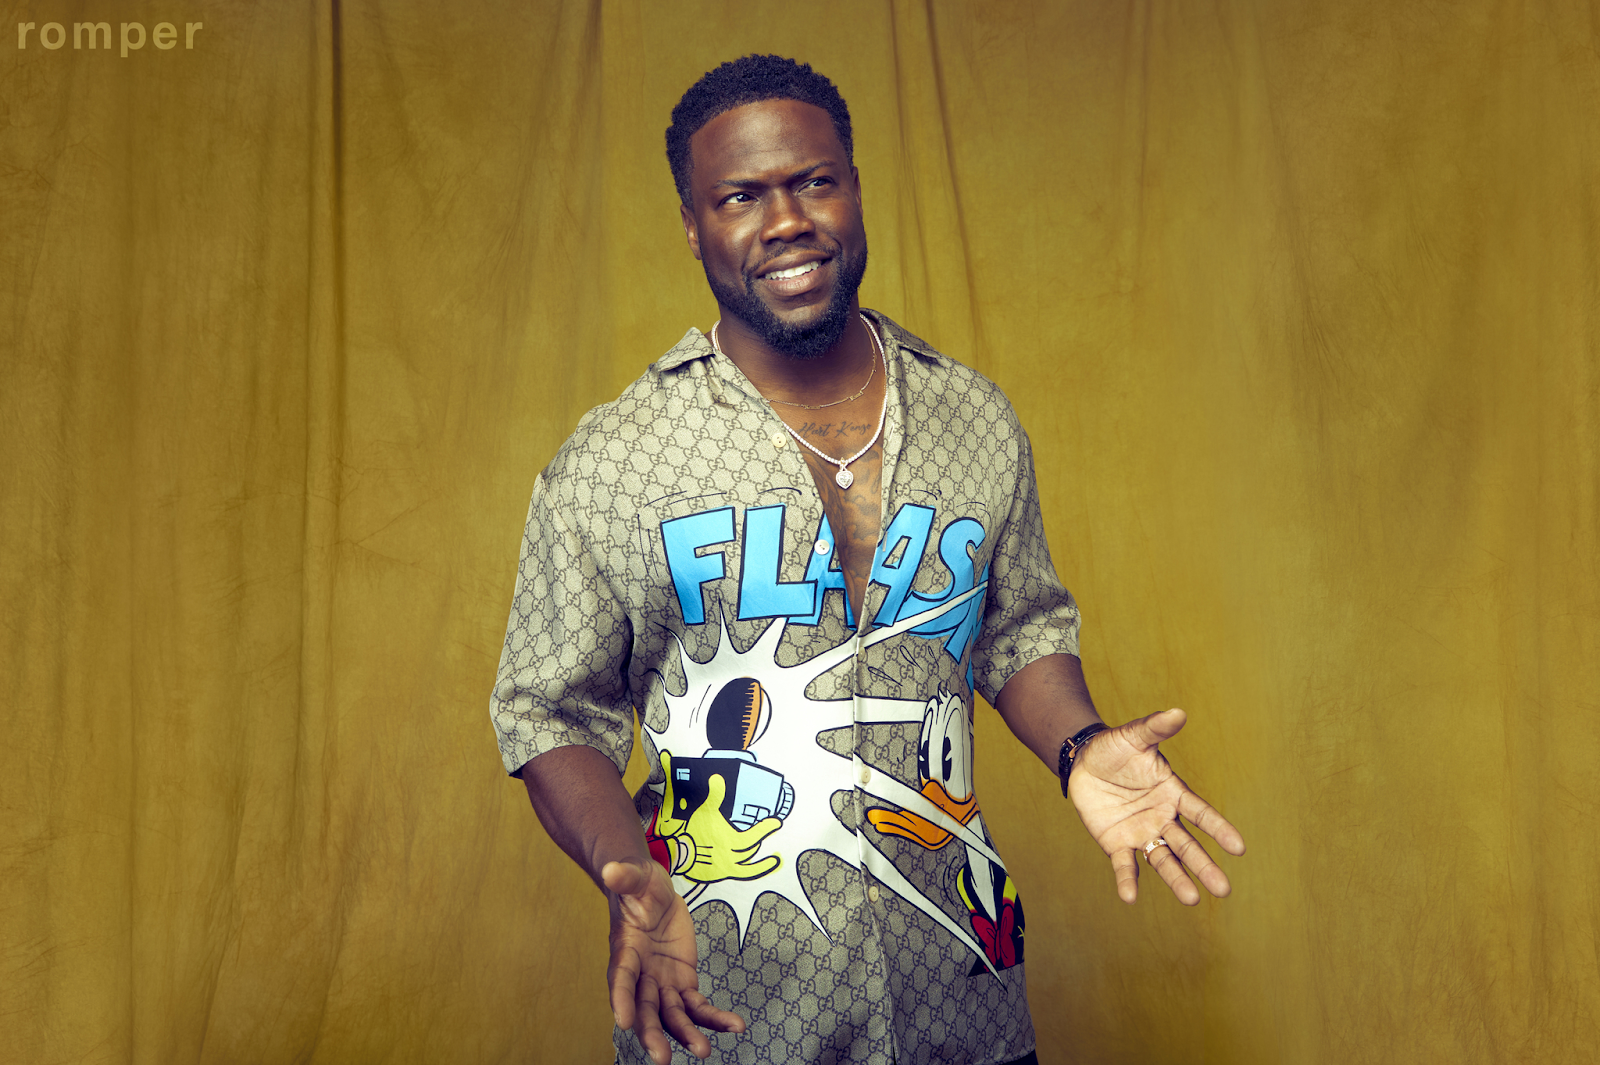 kevin-hart-coversthe-fathers-day-issue-of-romper-wearing-disney-x-gucci-shirt